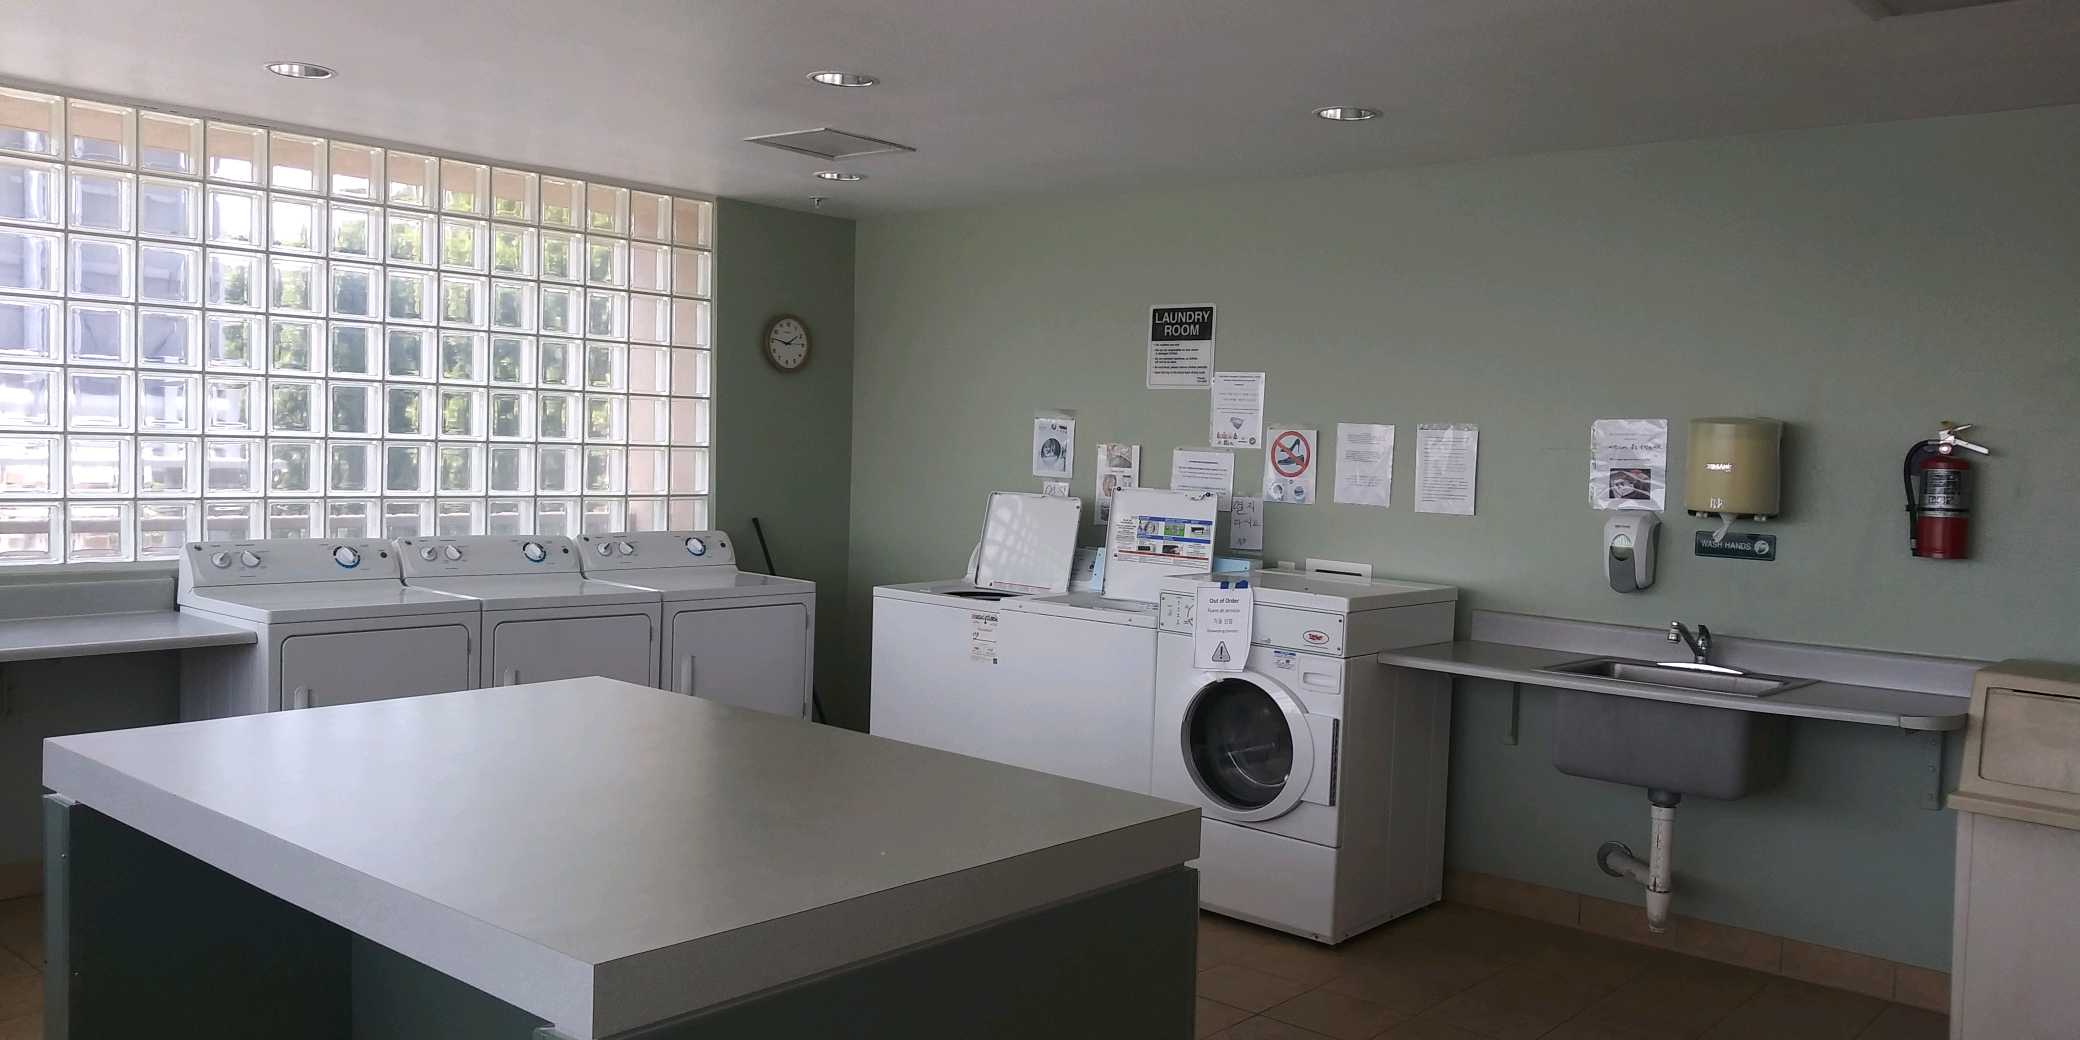 Laundry room with multiple washers and dryers. Center has a folding table. There is a large tiled window on one side of the wall. On the adjacent wall there are laundry room rules and signs posted. Thre is a sink, soap dispenser, paper towel dispenser, tr